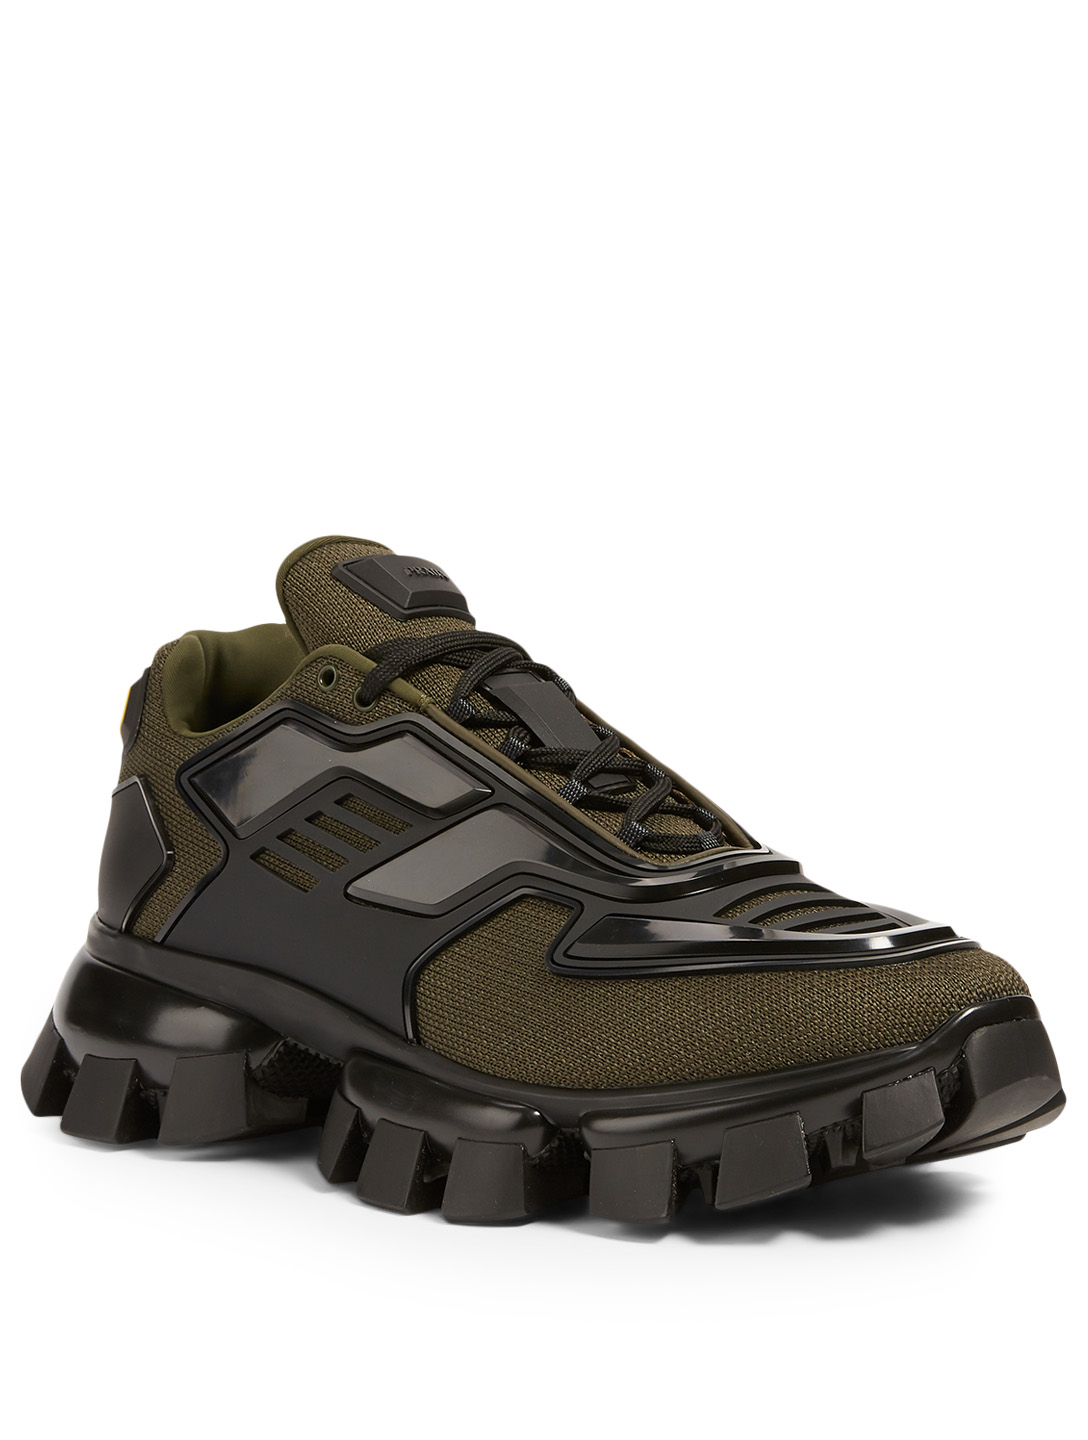 PRADA Cloudbust Thunder Knit Sneakers Men's Green